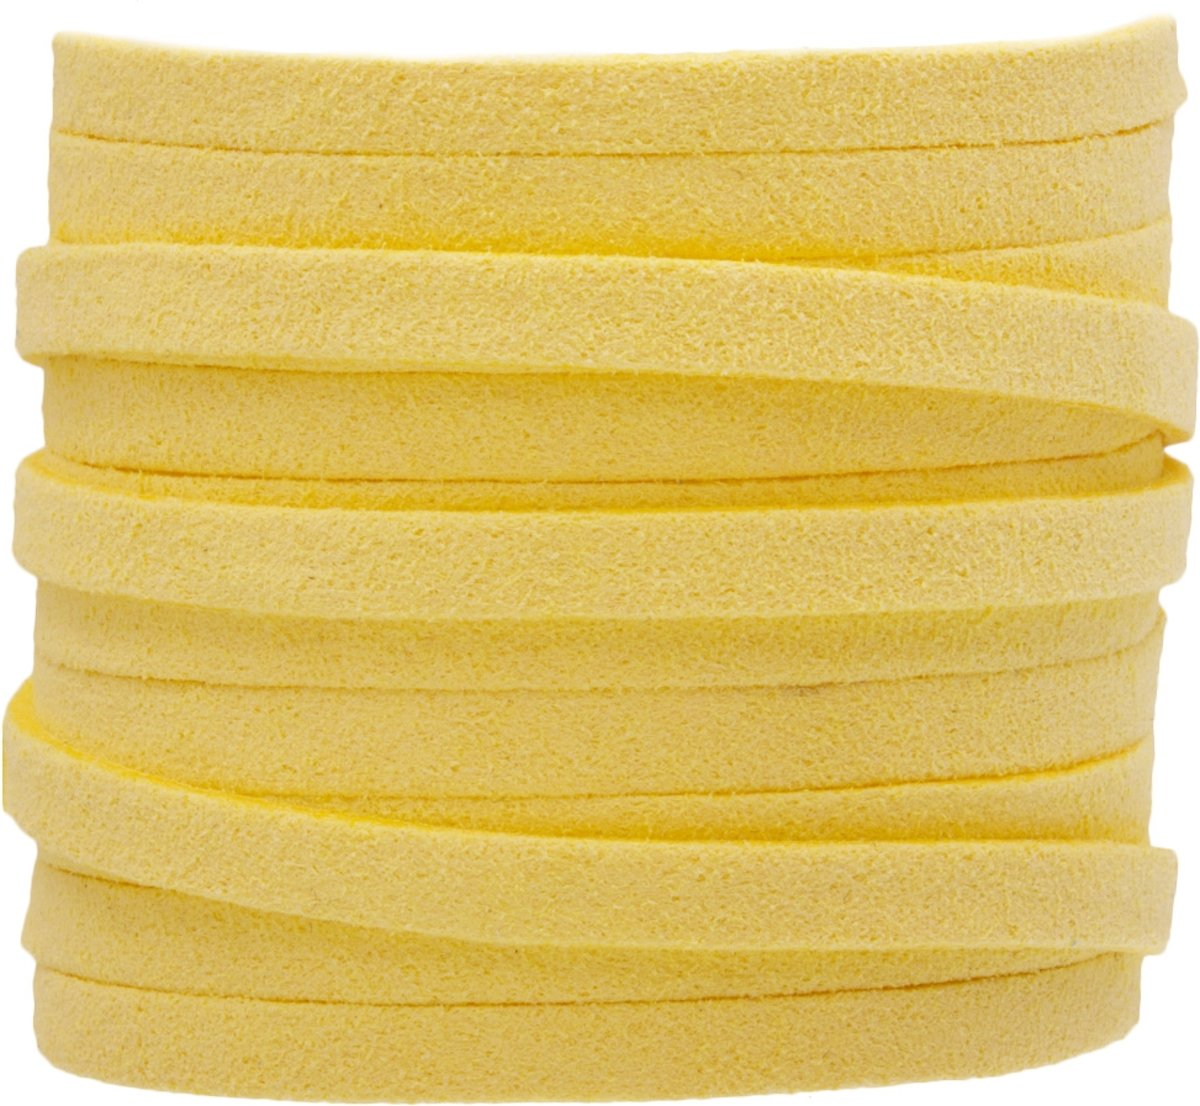 Faux Suede Veter (5 mm) Yellow (5 Meter)